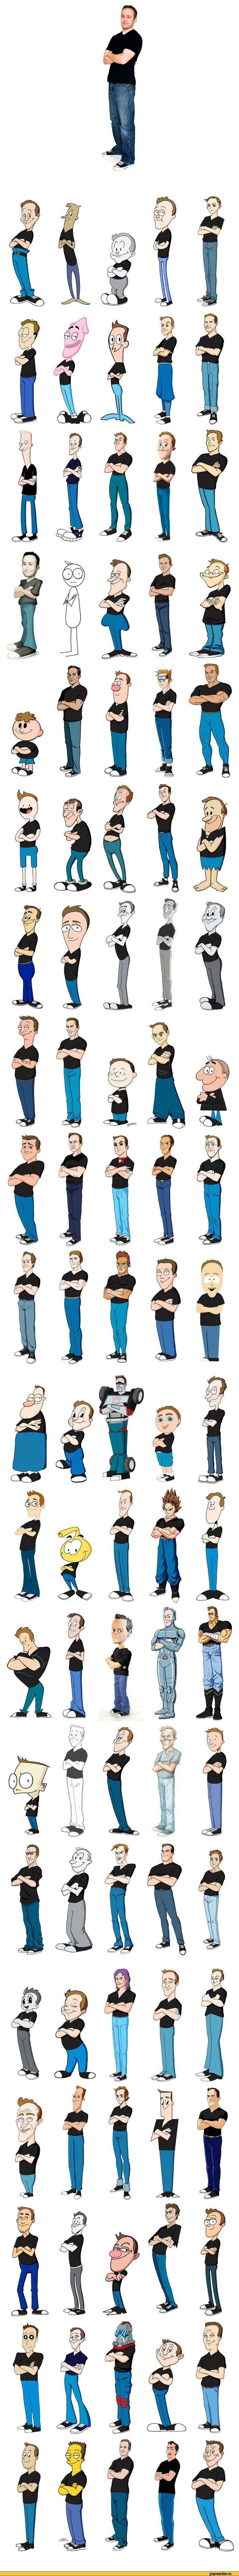 Many different interpretations of the same pose - Male Body study - man standing - Drawing Reference